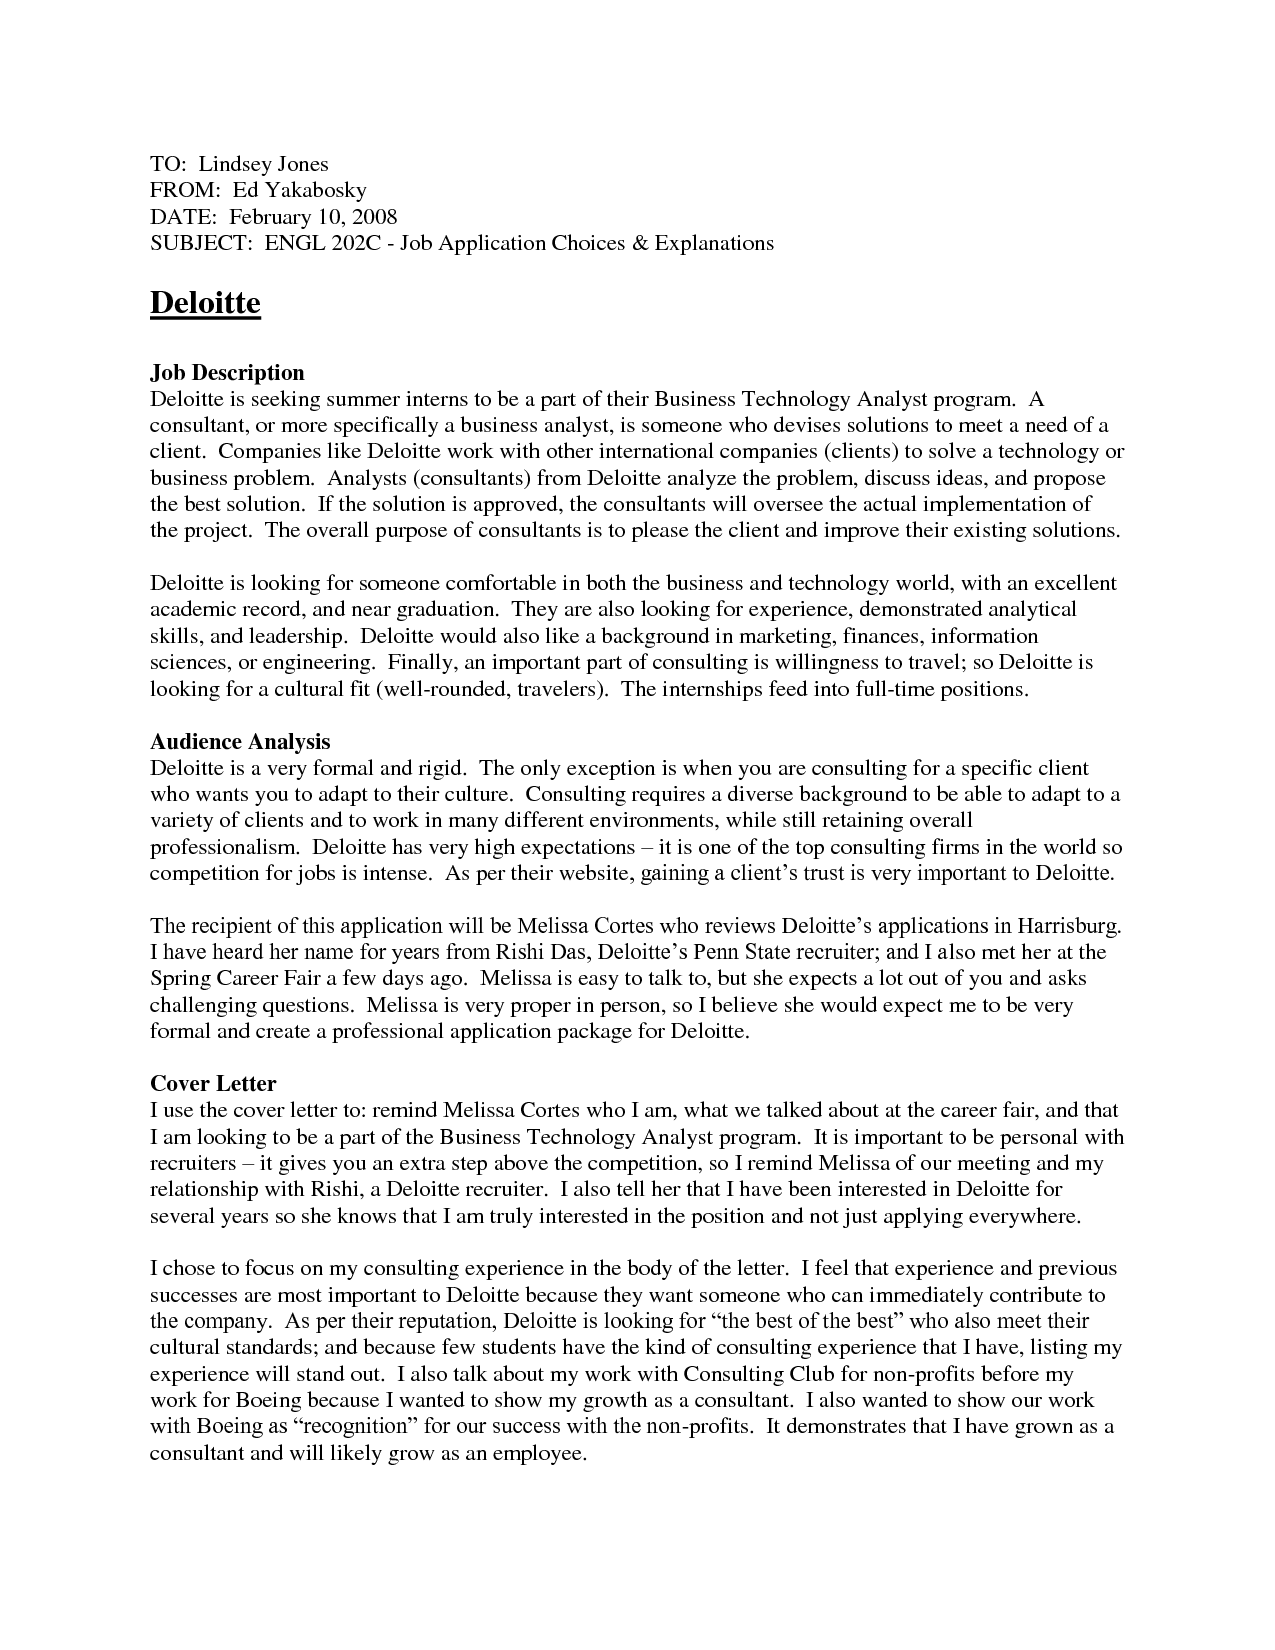 Pharmacy Technician Letter Format SampleBusinessResume